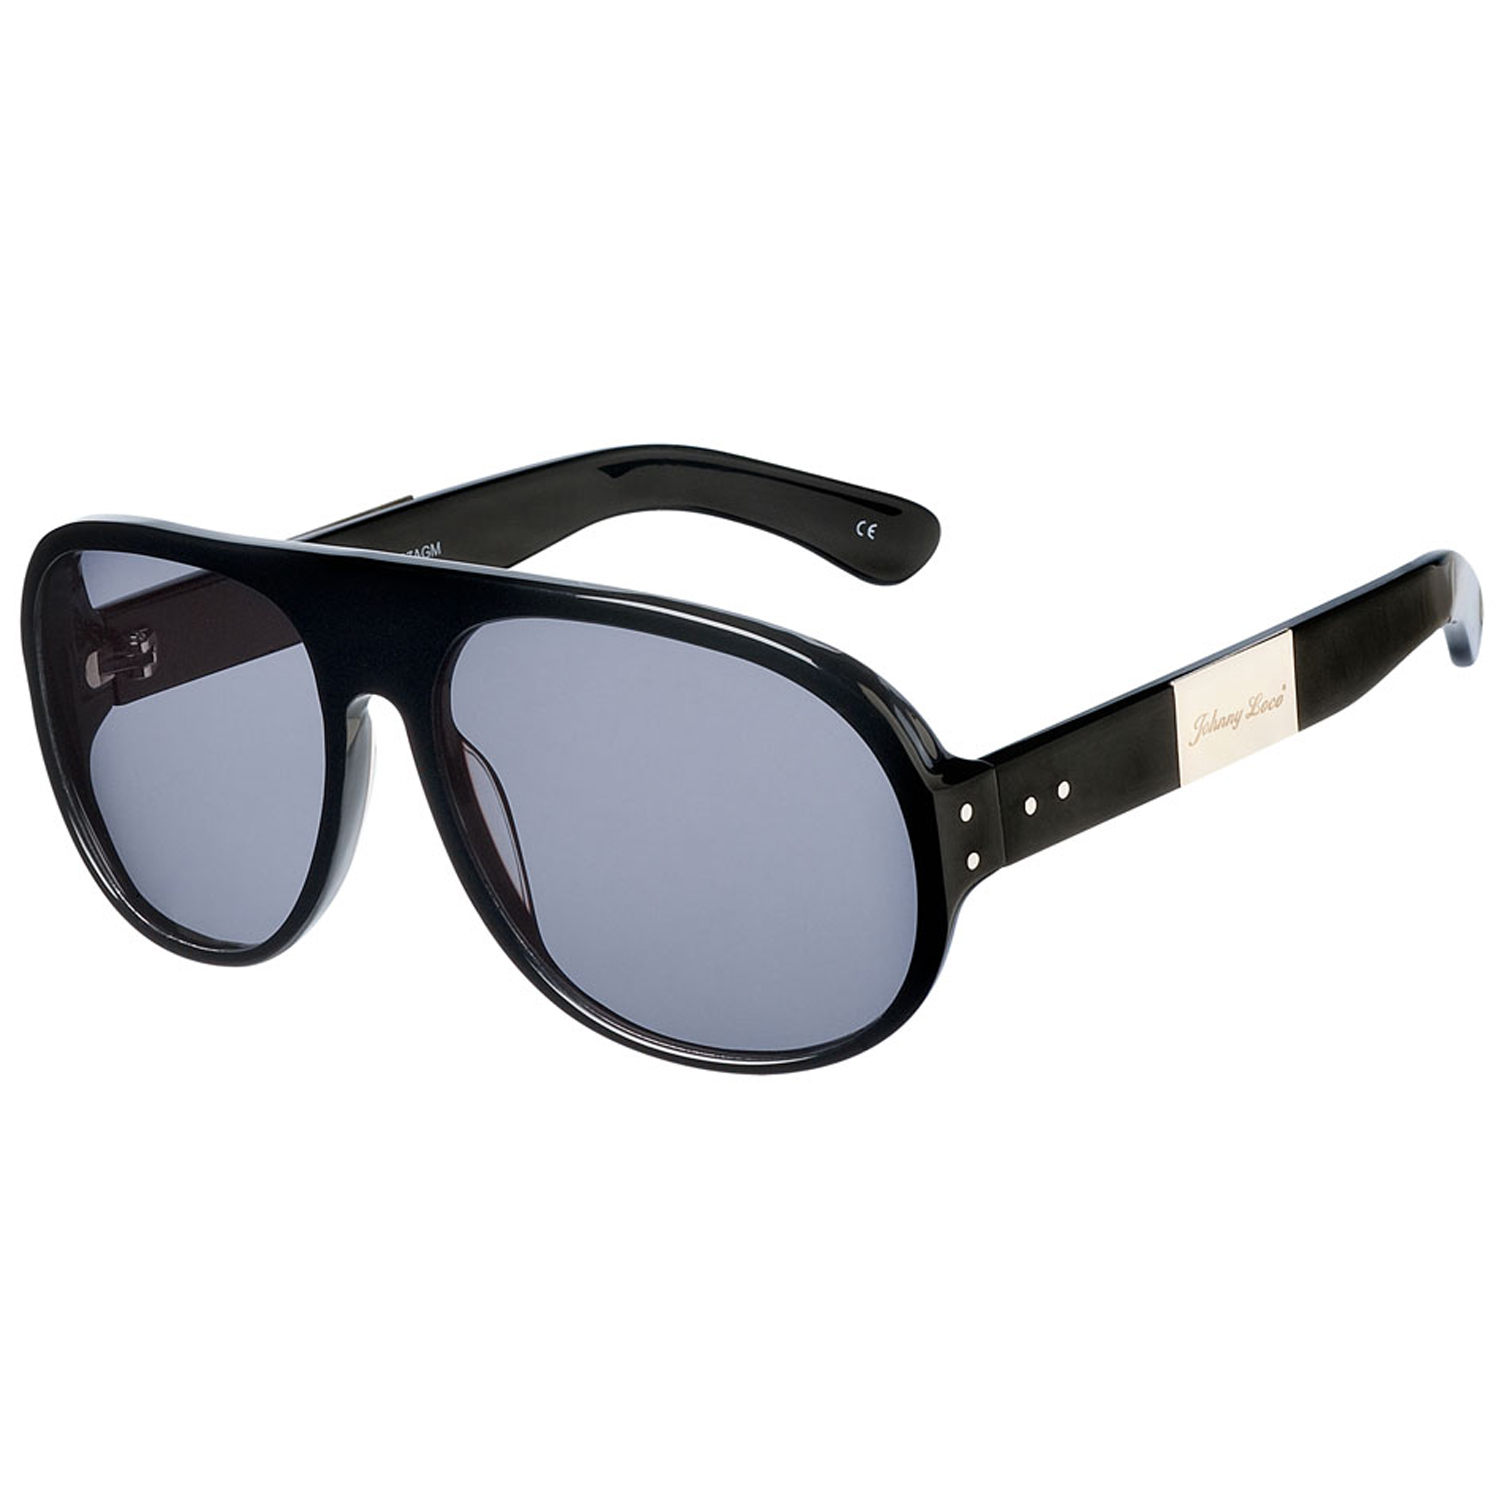 Johnny Loco Sunglasses S-1137 AGM 60 The Doctor Black